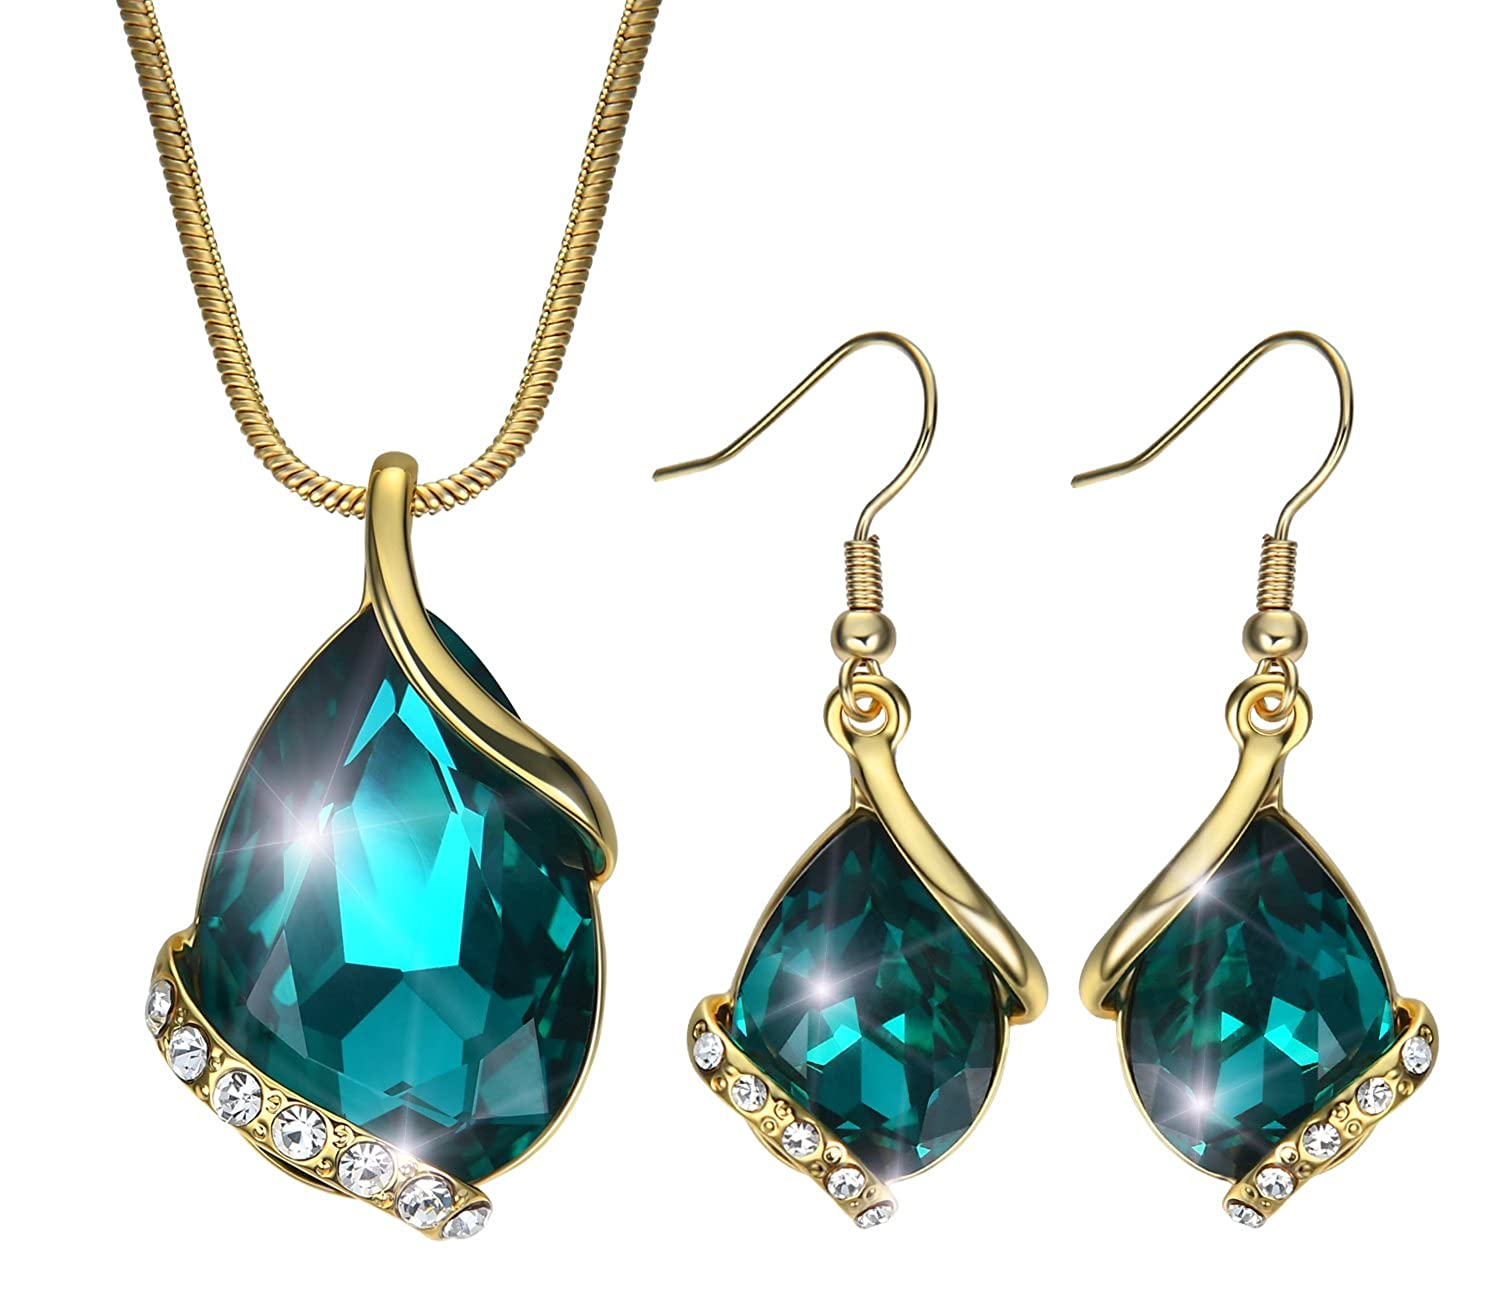 Akvode 18K Gold Plated Cubic Zirconia Swarovski Teardrop Pendant Jewelry Set Womens Necklace Earring Green